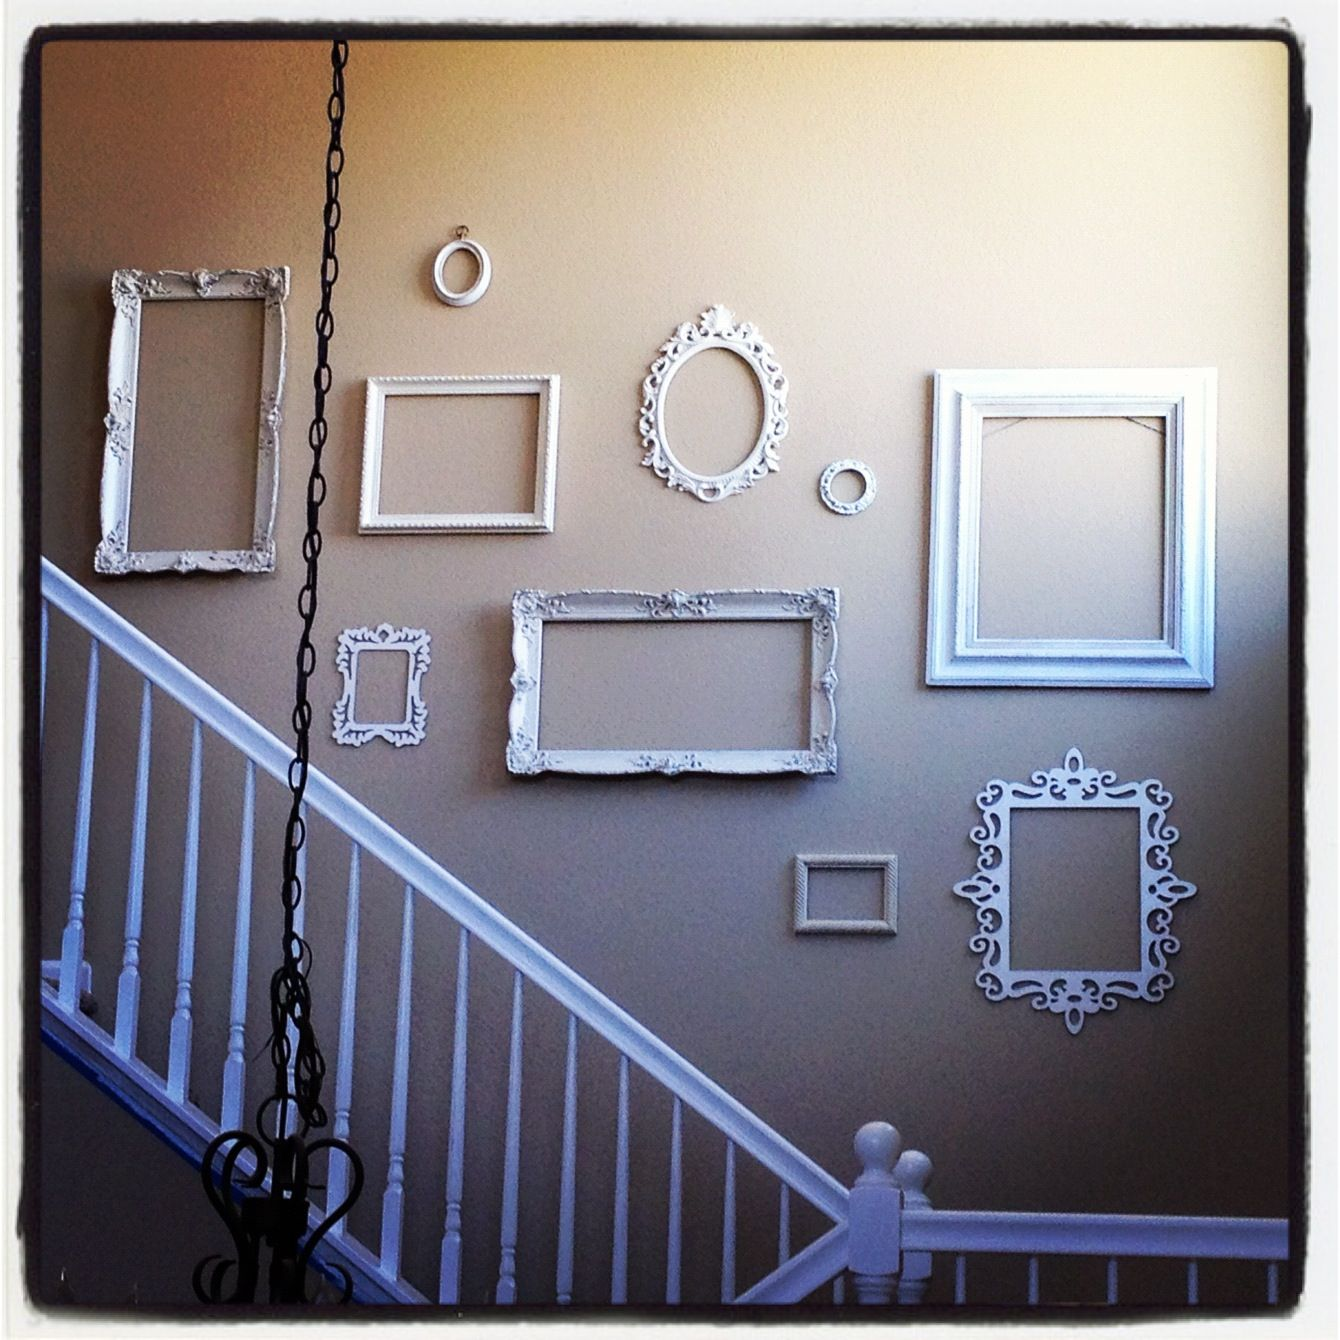 Picture Frame Collage In Bright Colors In Between The Doors Frame Wall Decor Frames On Wall Frame Wall Collage